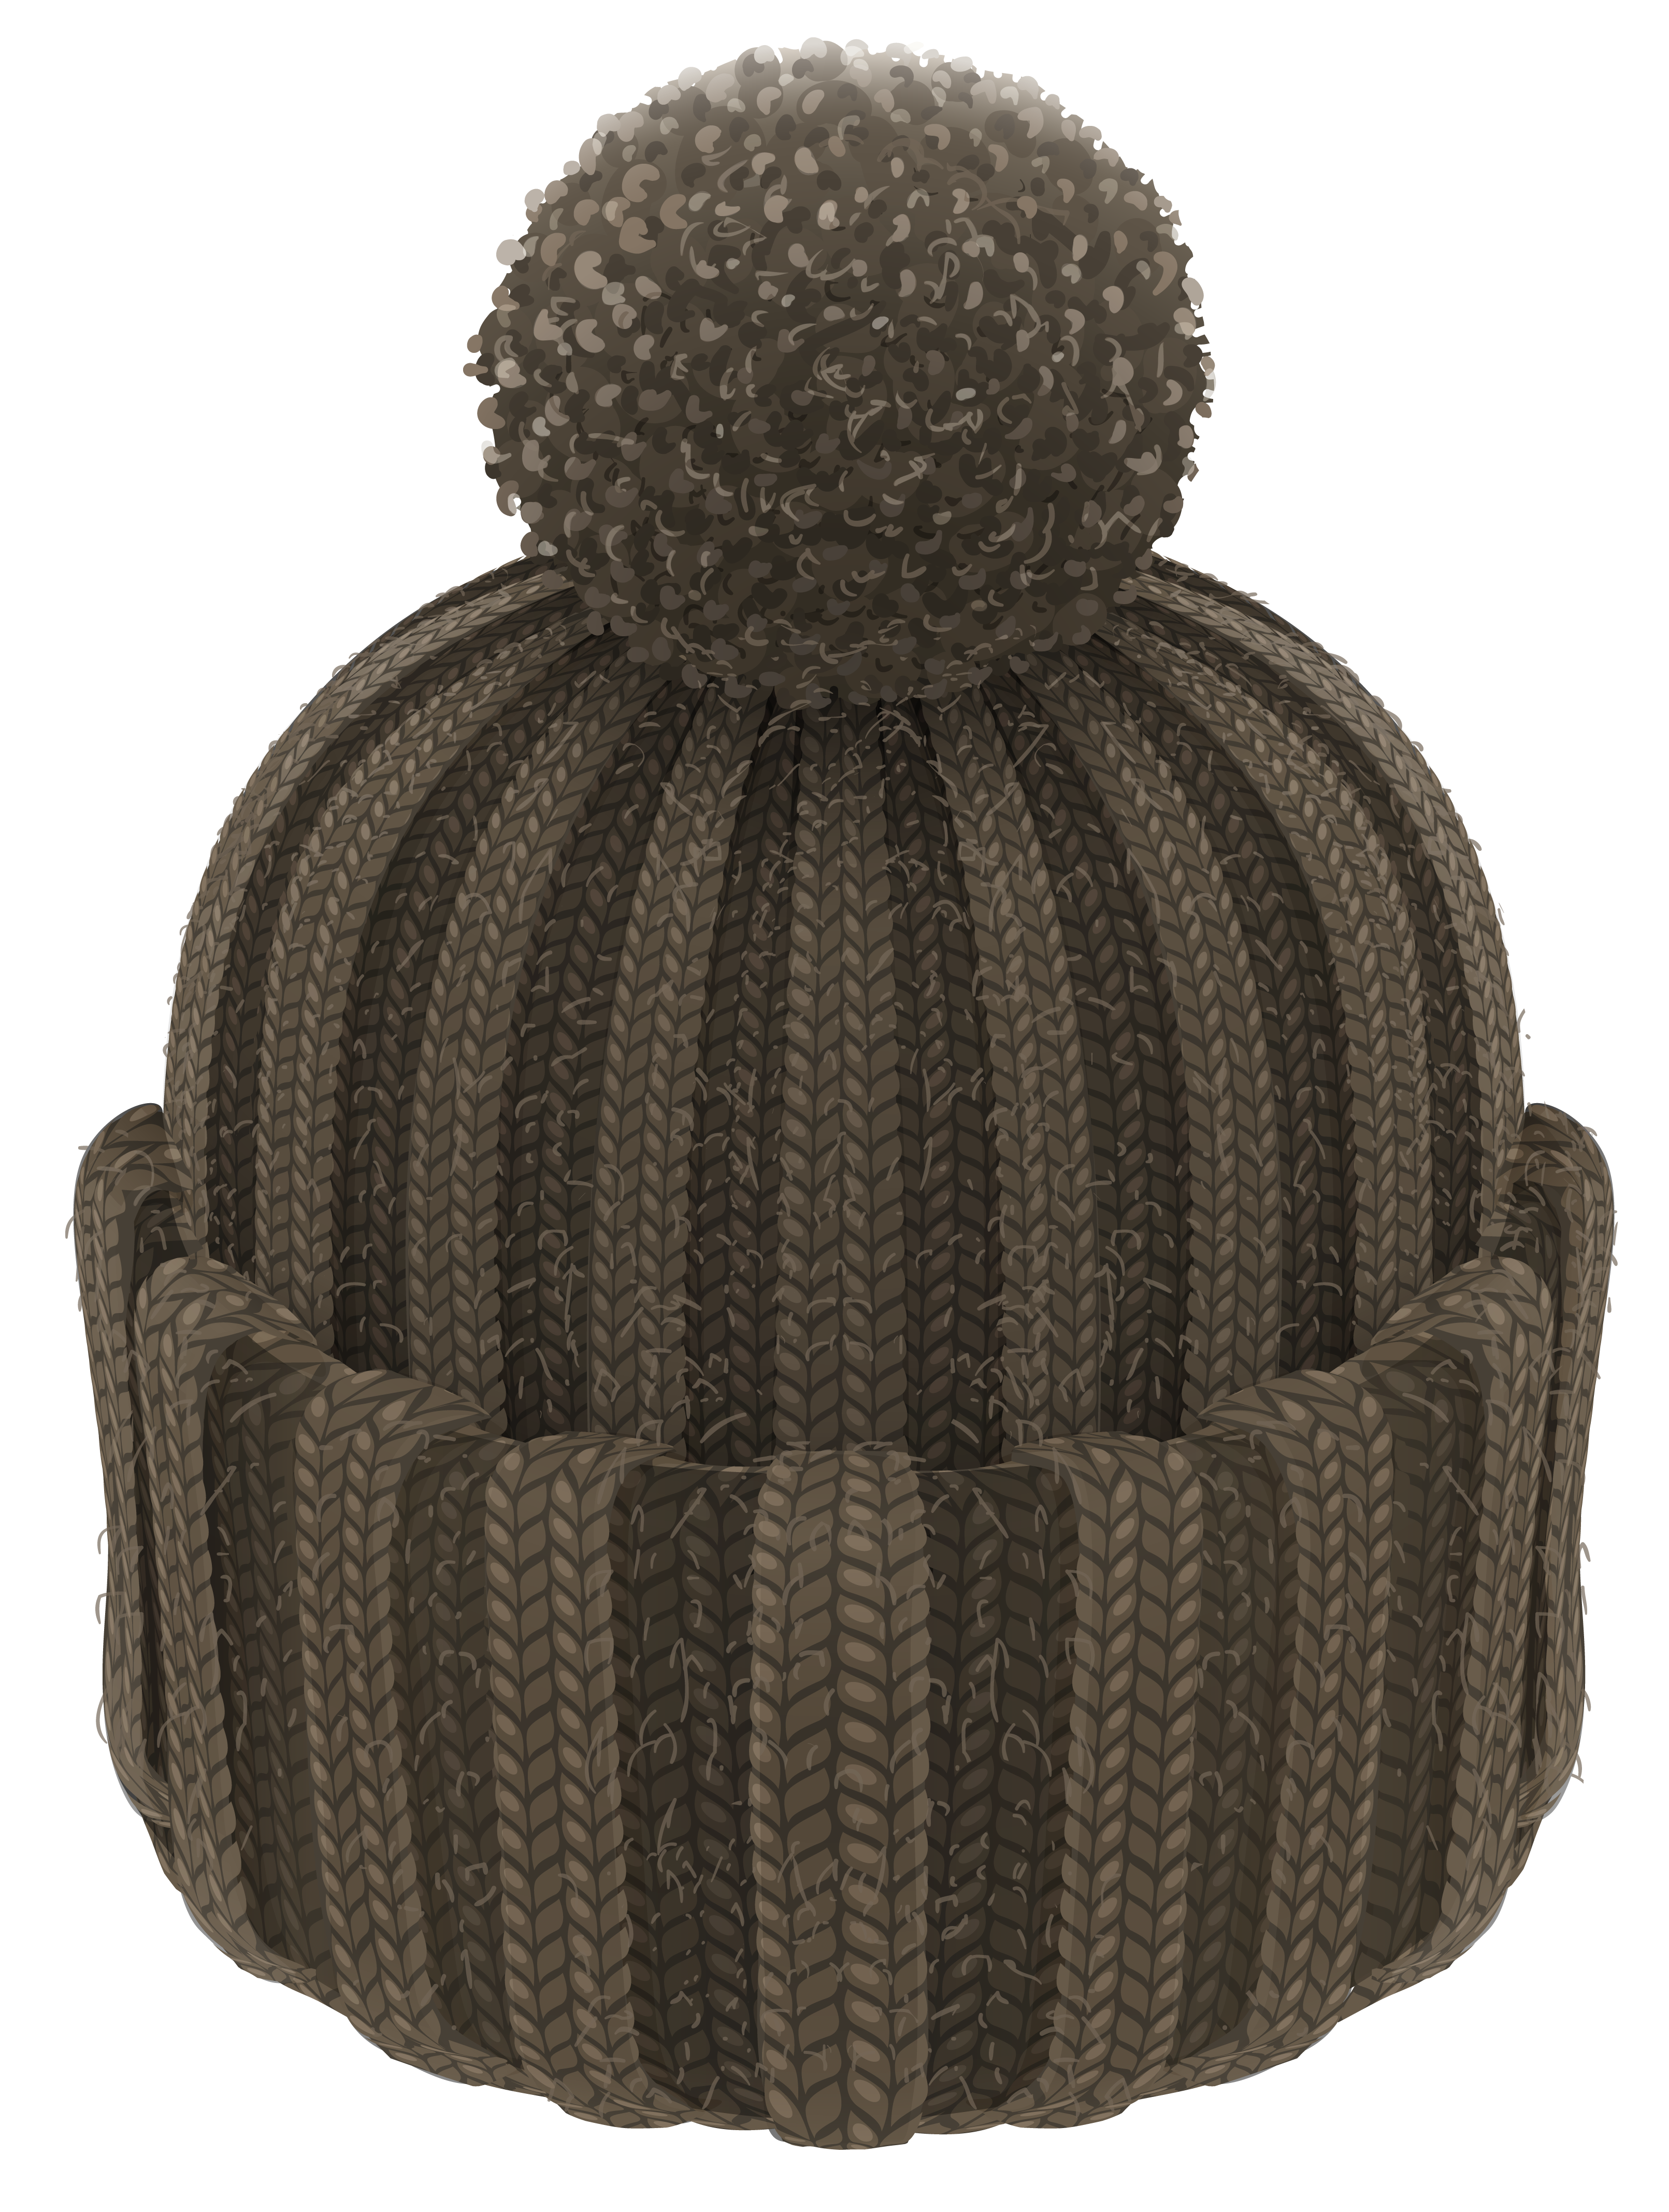 Beanie Hat Png & Free Beanie Hat.png Transparent Images.